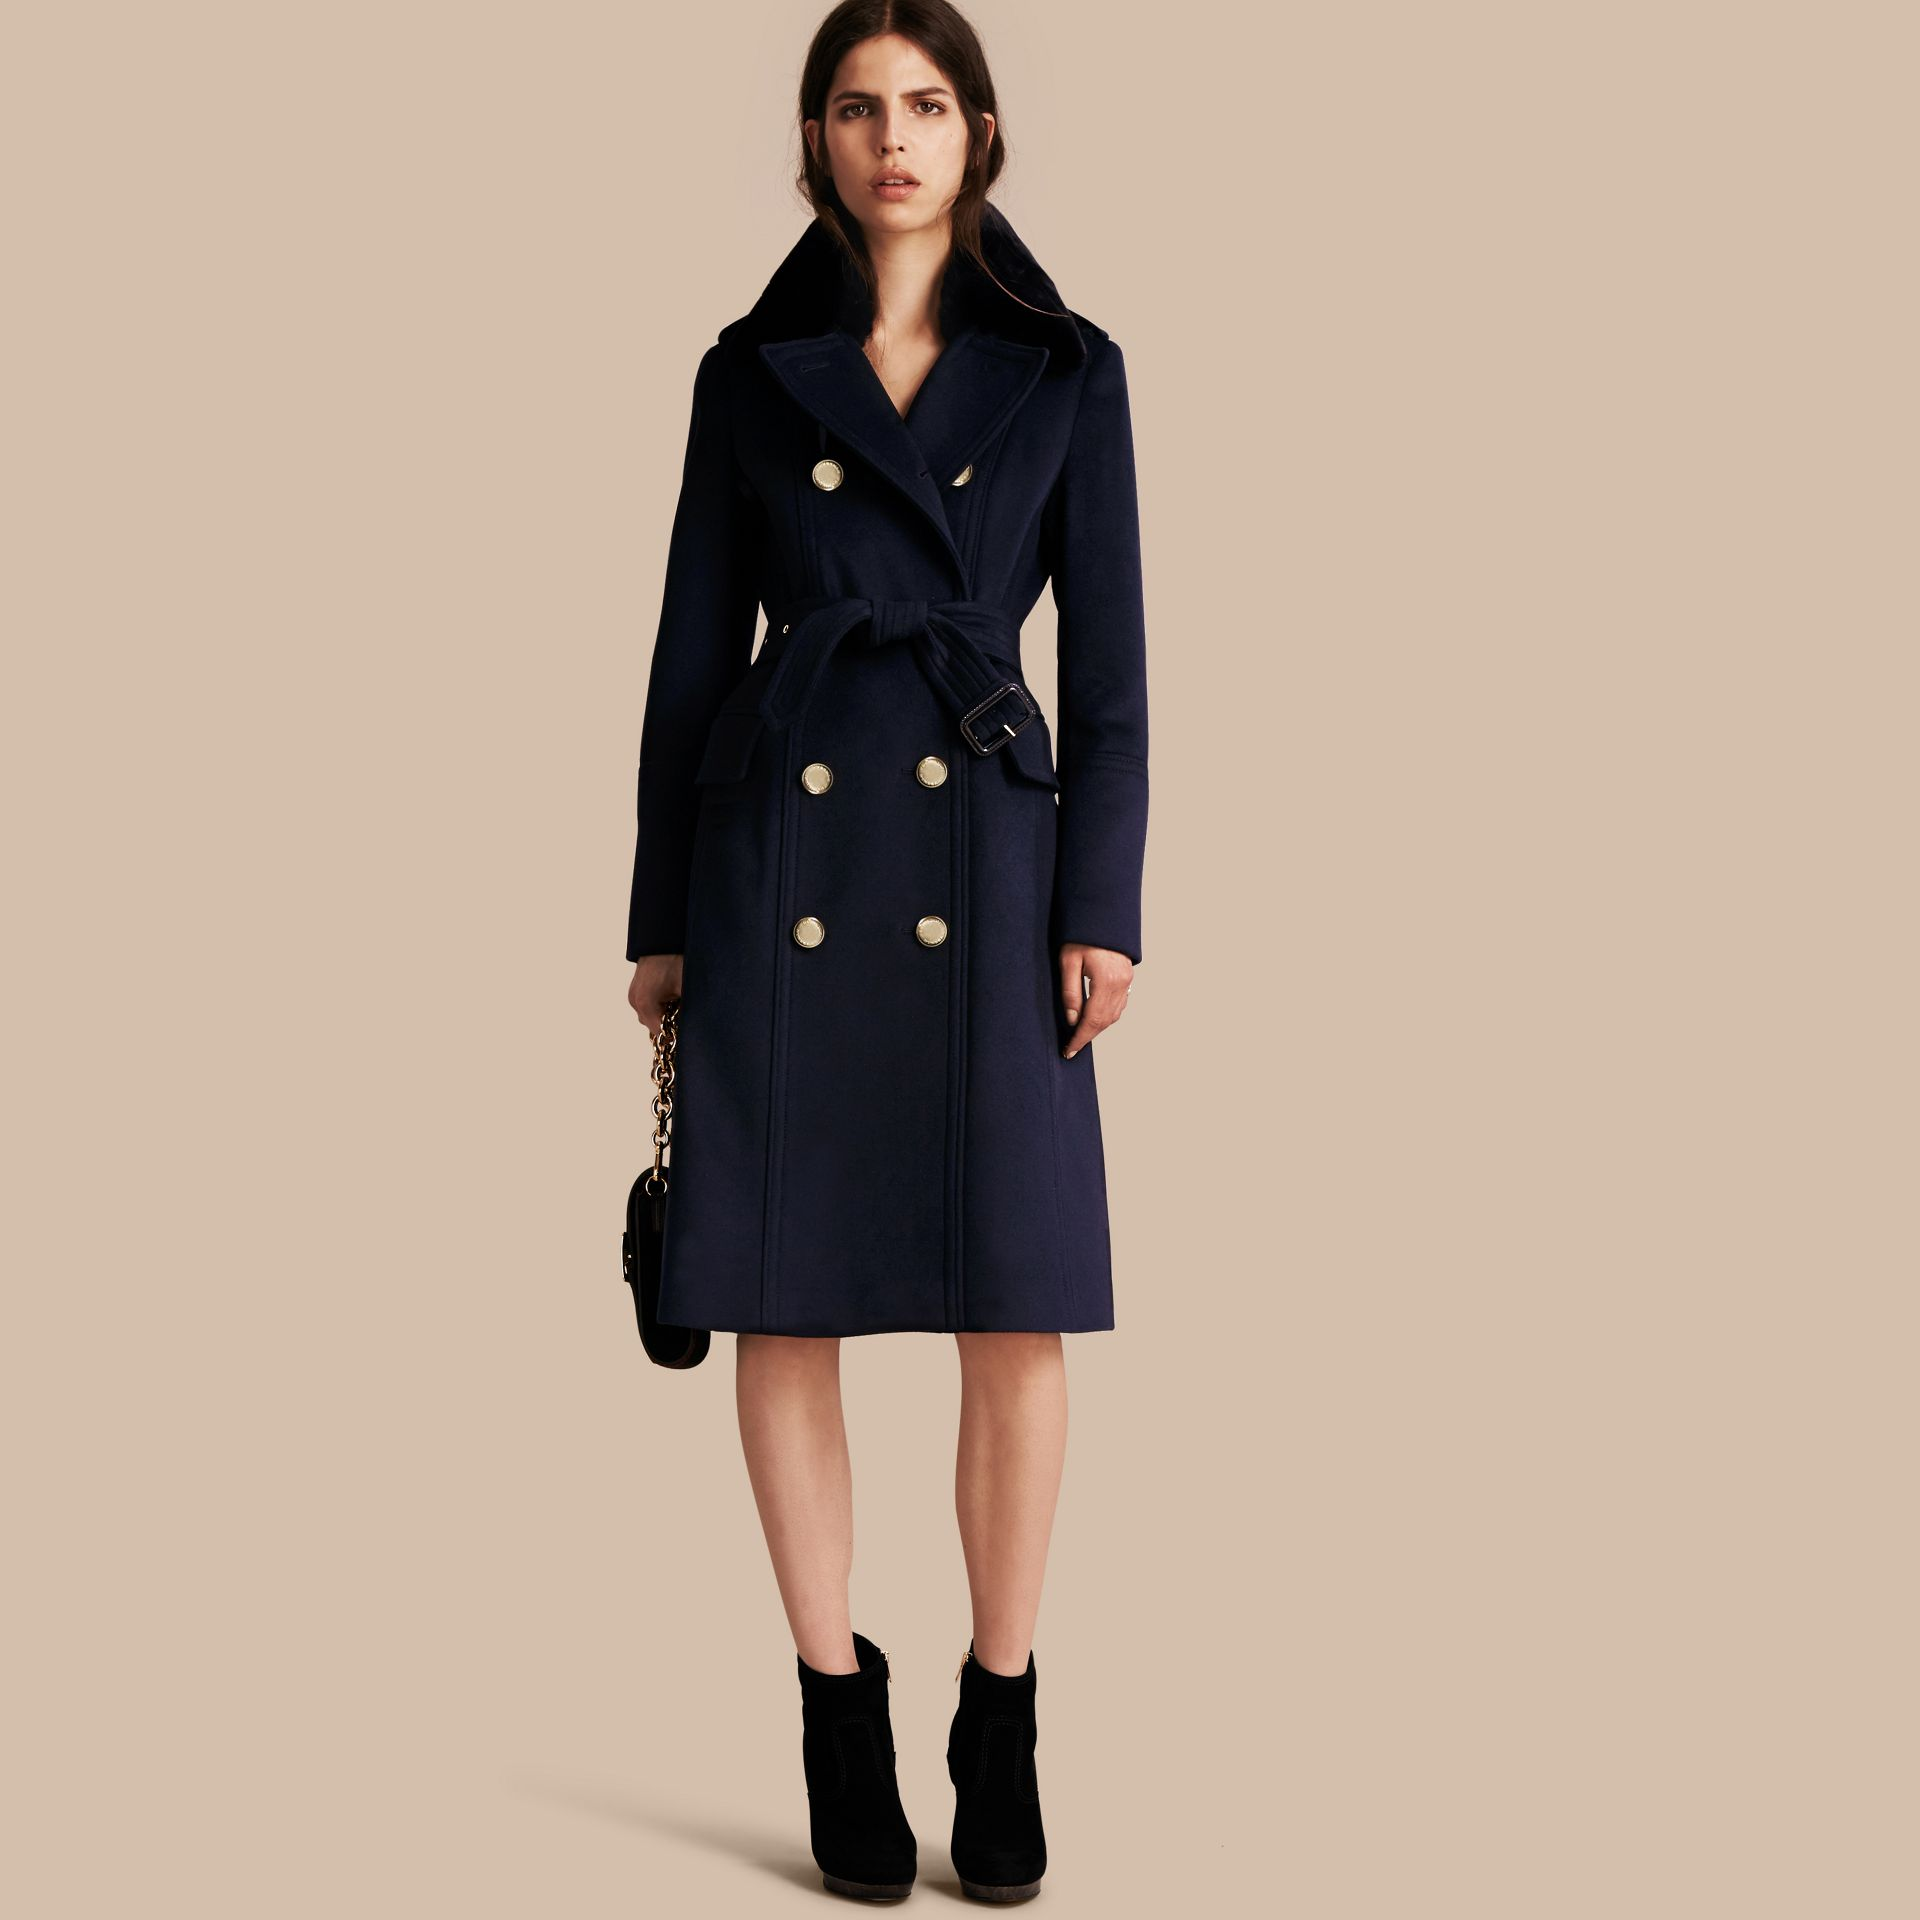 Navy Wool Cashmere Trench Coat with Detachable Fur Collar - gallery image 1